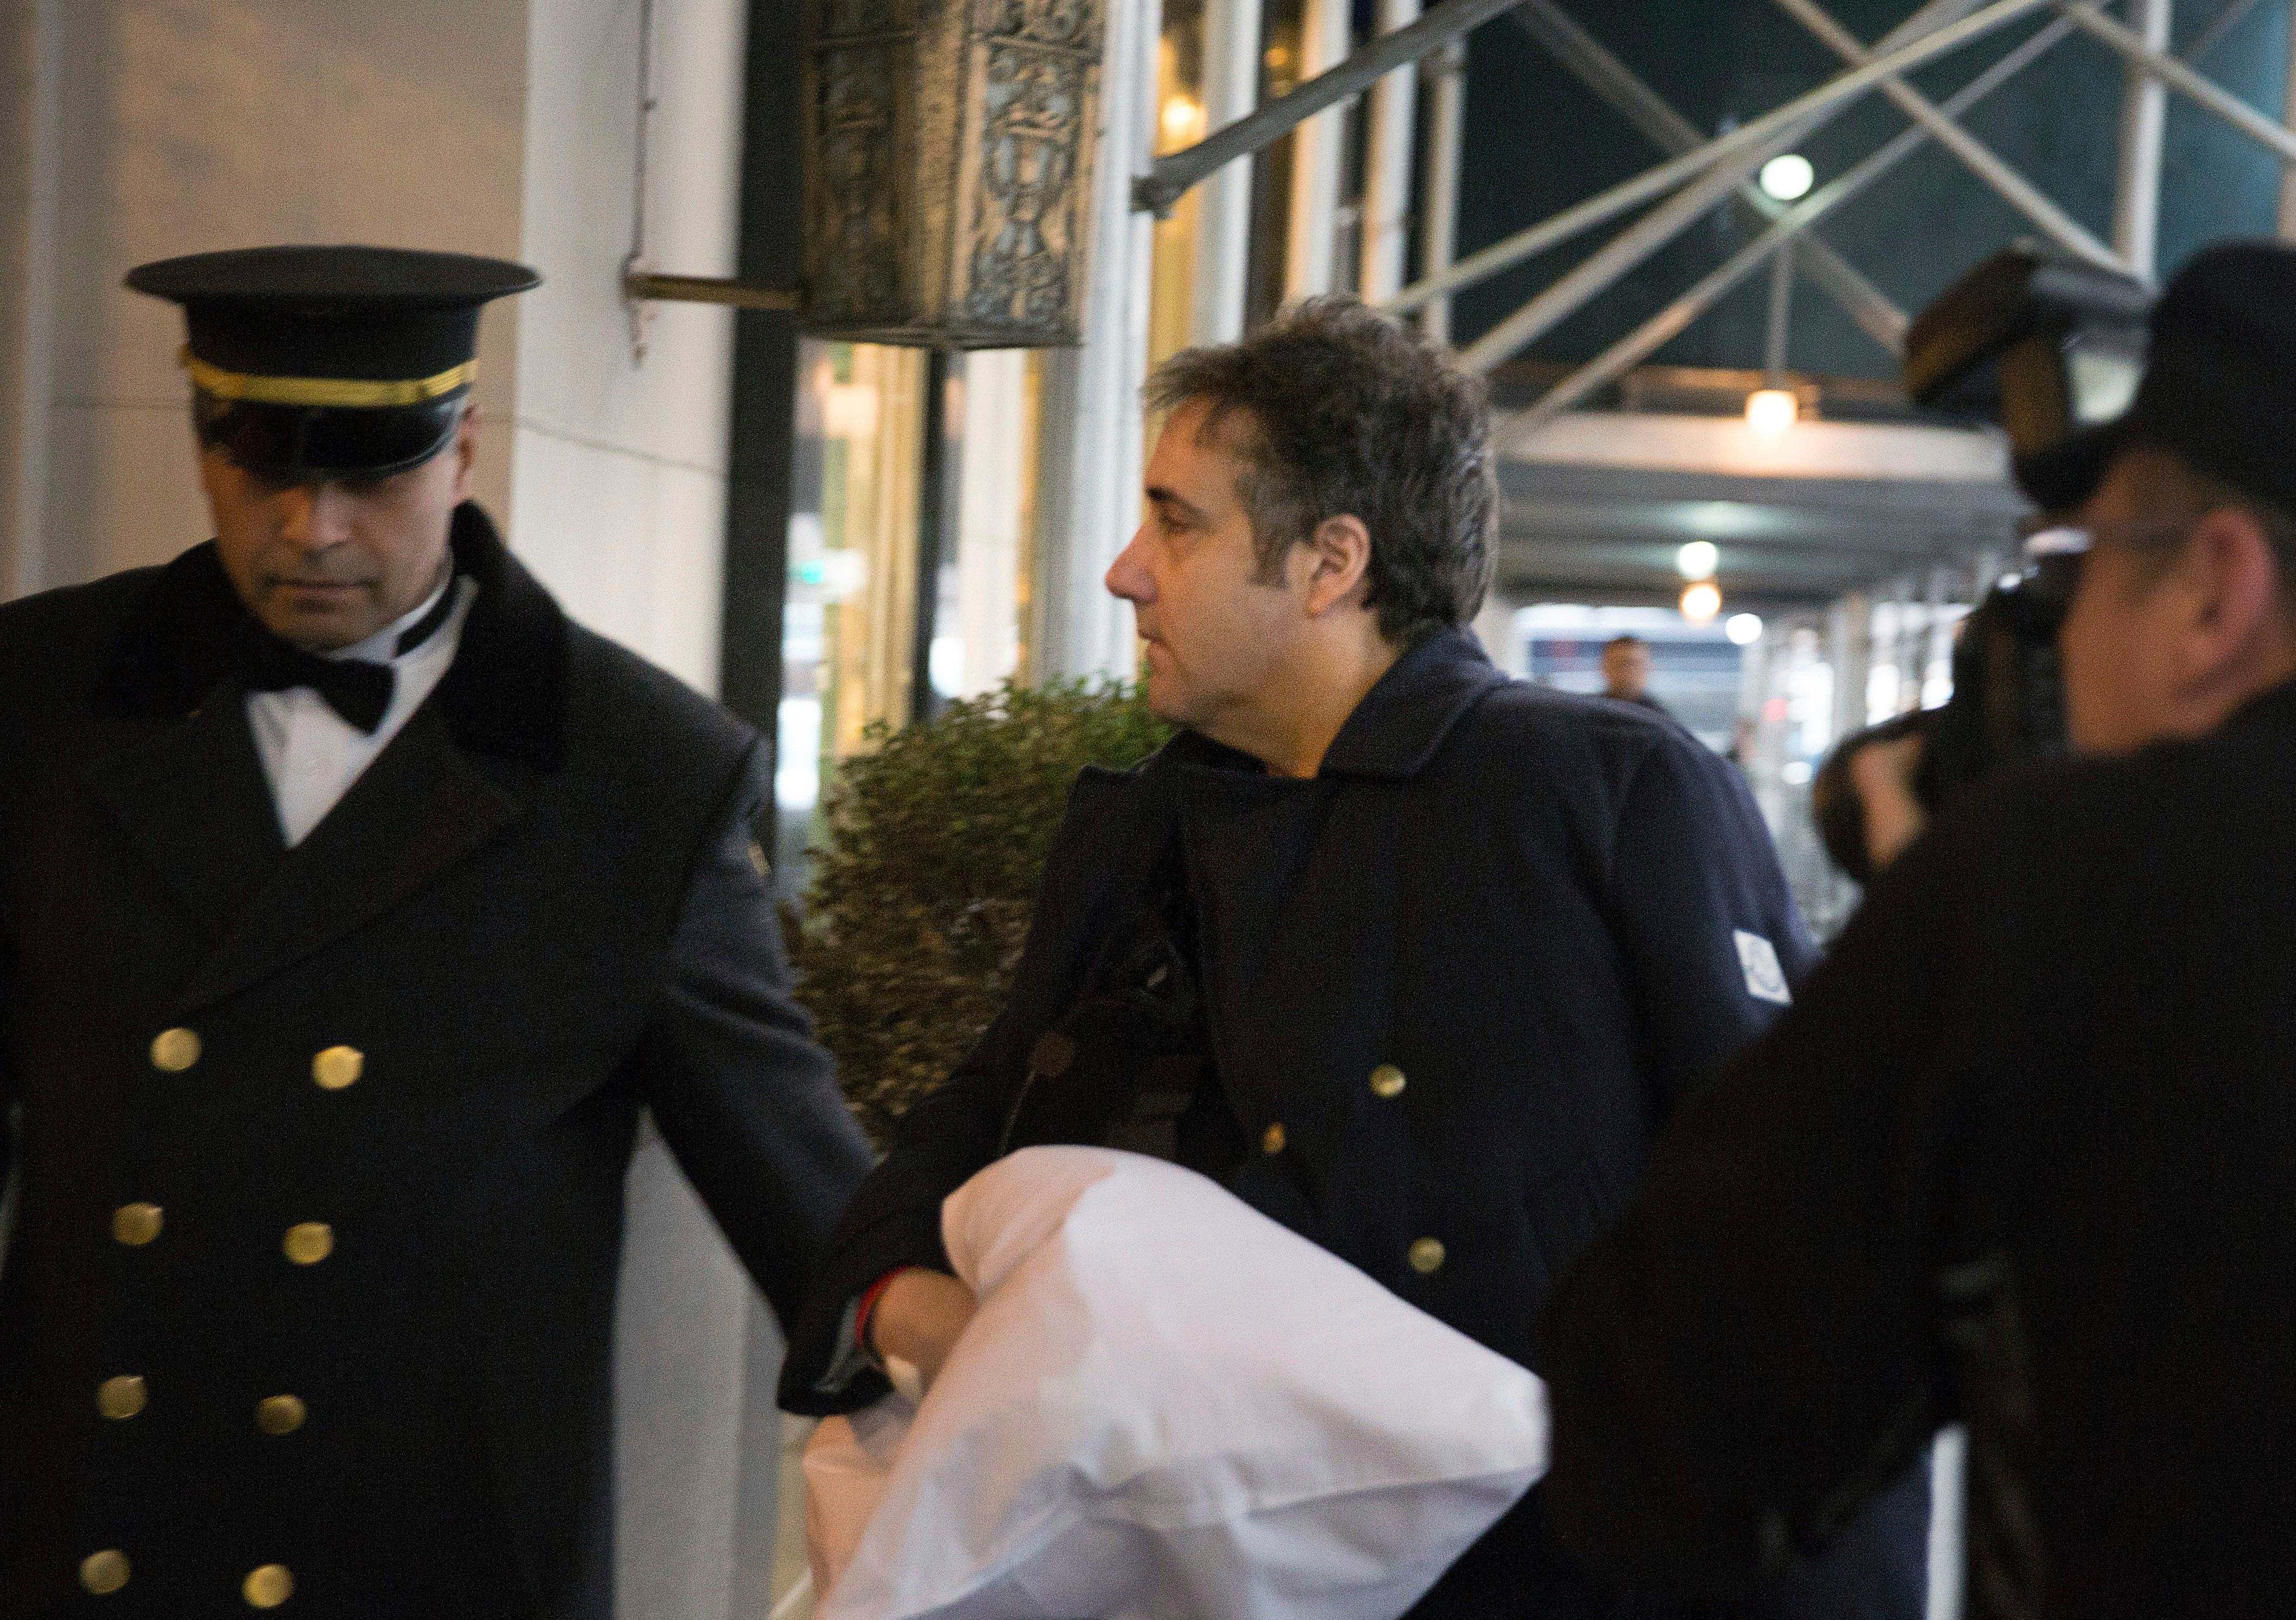 "ADDS THAT COHEN'S LEFT ARM IS IN A SLING - Michael Cohen arrives at his home in New York with his left arm in a sling supported by a pillow Friday, Jan. 18, 2019. Democrats are vowing to investigate whether President Donald Trump directed Cohen, his personal attorney, to lie to Congress about a Moscow real estate project, calling that possibility a ""concern of the greatest magnitude.""  (AP Photo/Kevin Hagen)"